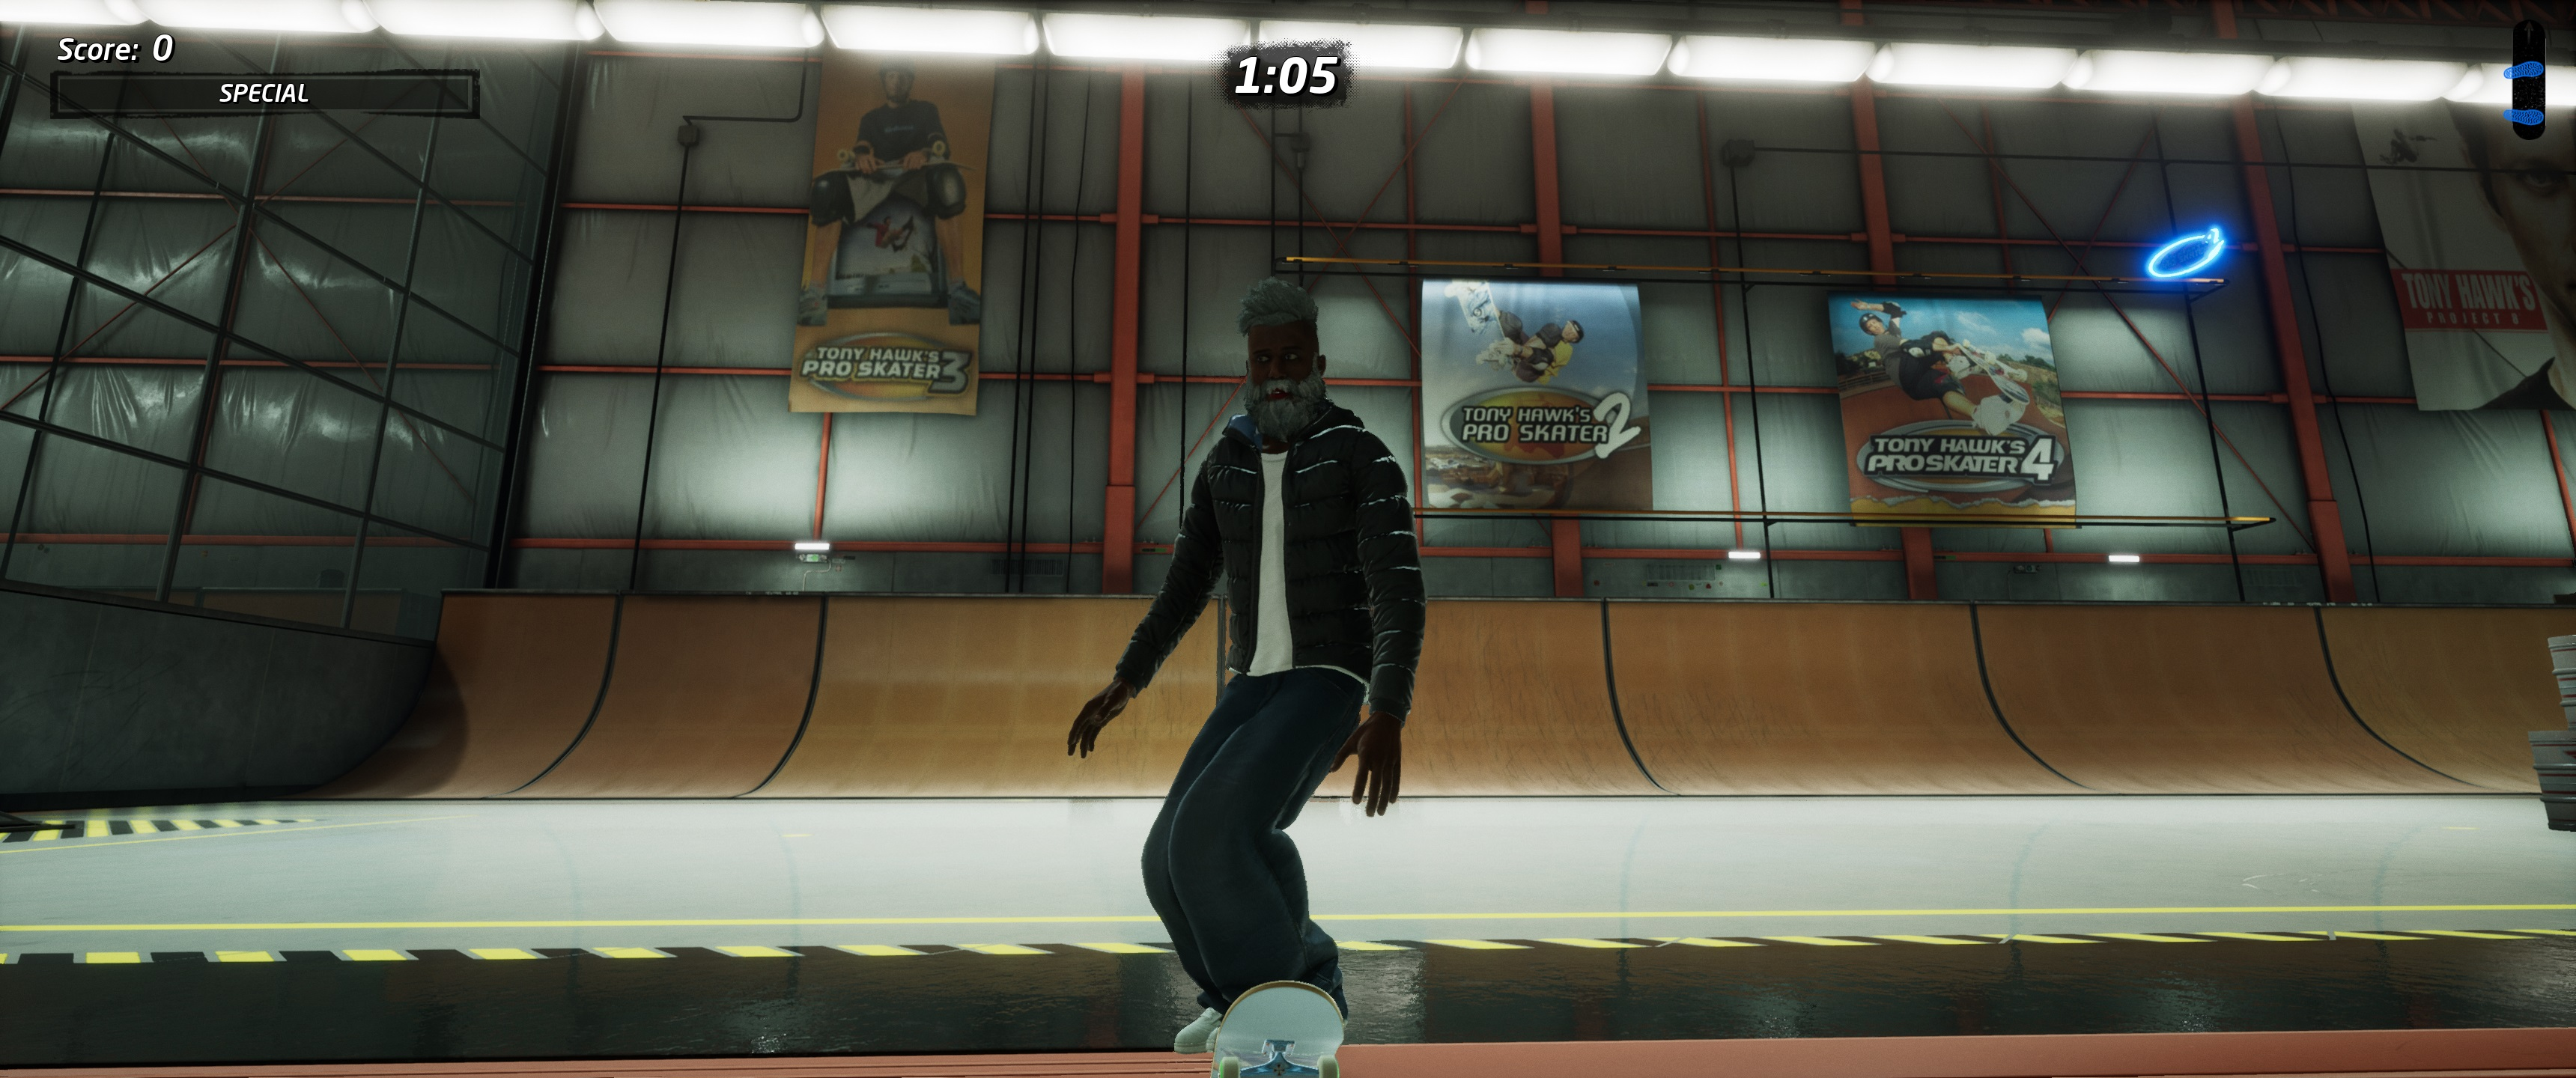 THPS 1+2 gives a nod to the franchise's history in the remake of the iconic THPS 2 Hangar level.